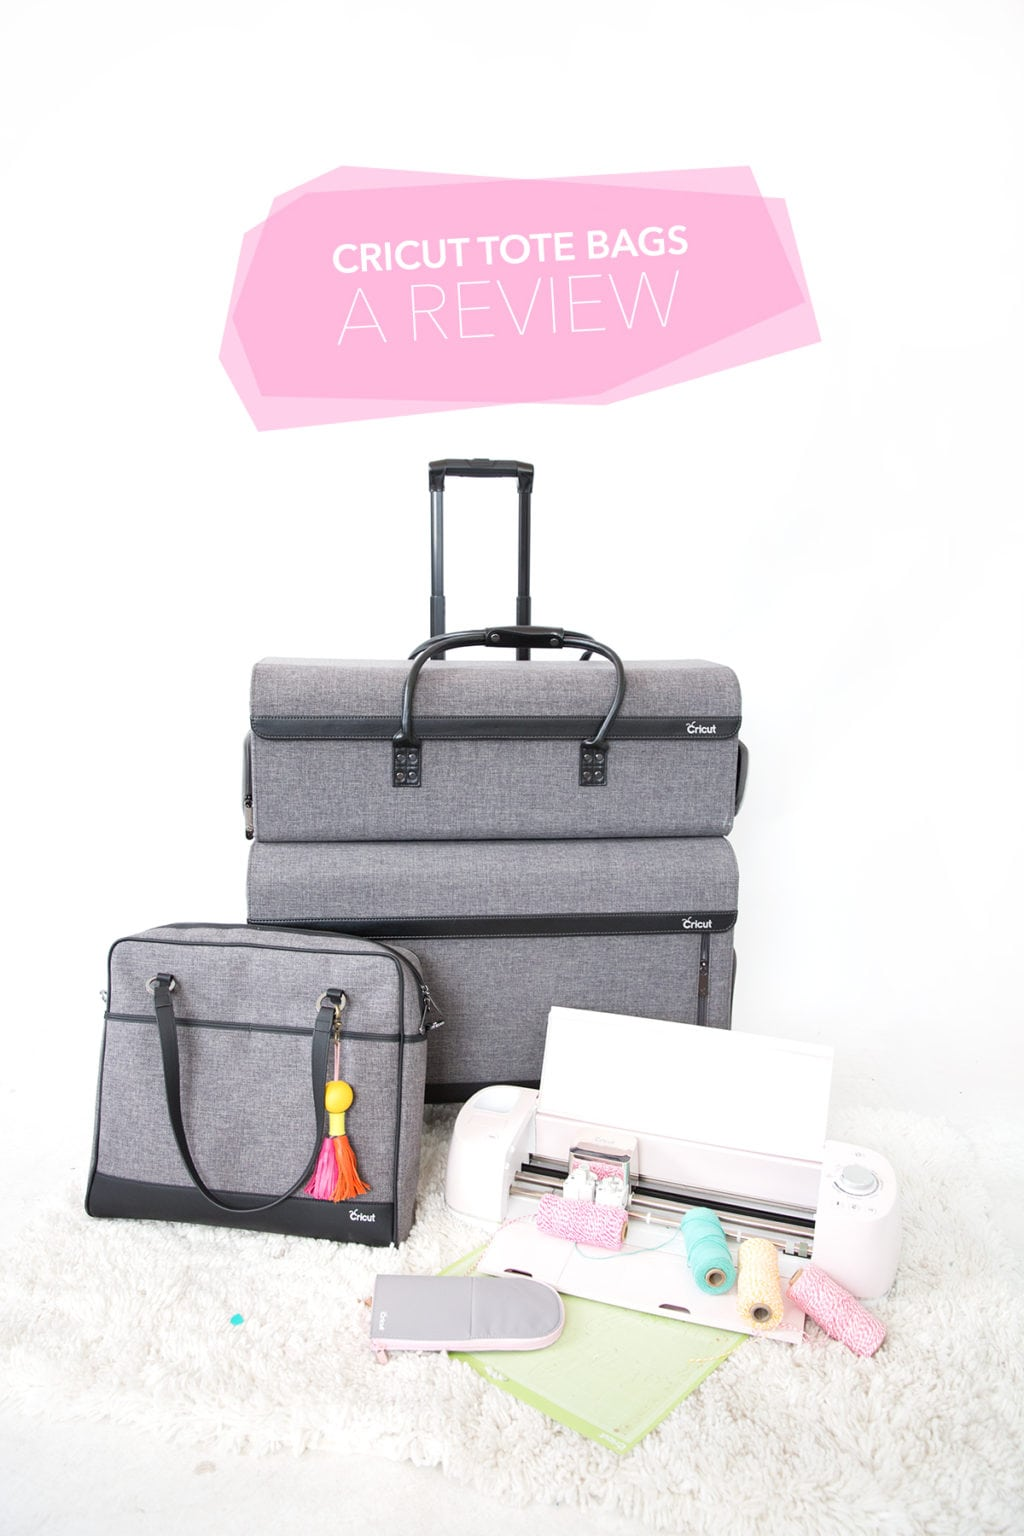 Cricut Explore Bags: A Review | damask love